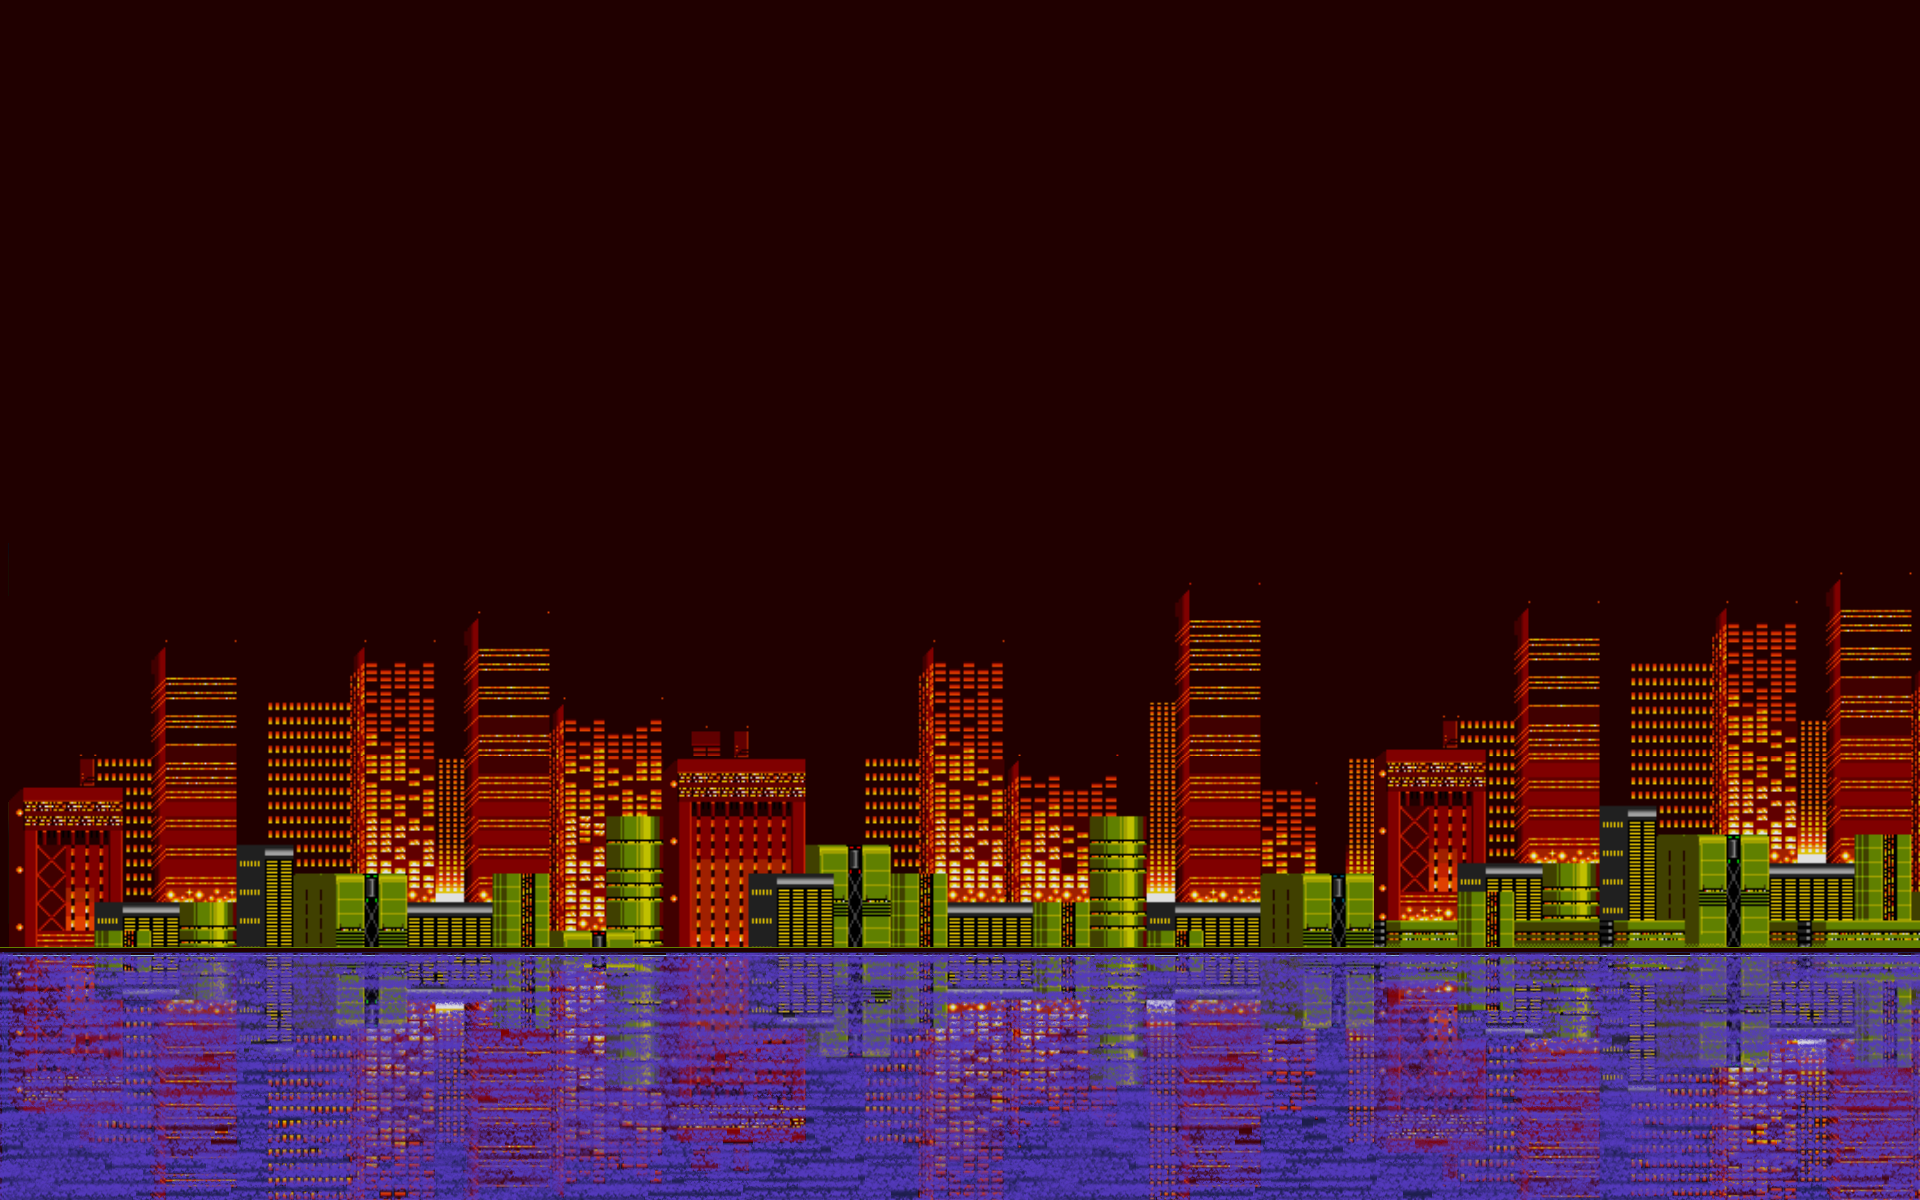 Android Wallpaper: 8-Bit Landscapes